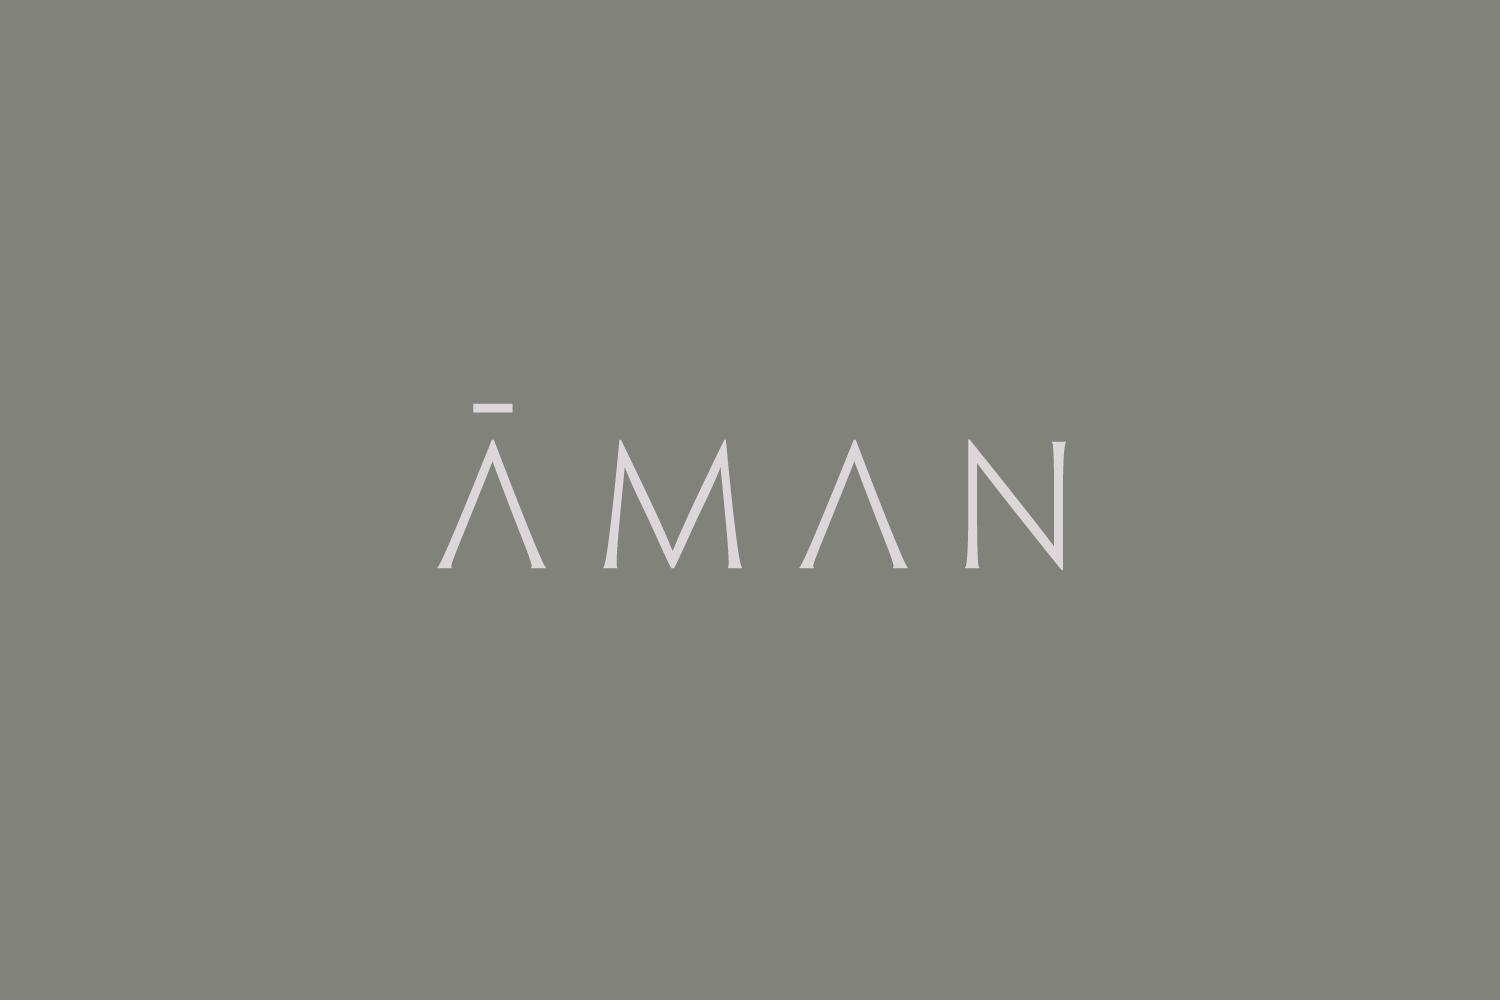 Brand identity and logotype for luxury resort business Aman by Construct, United Kingdom